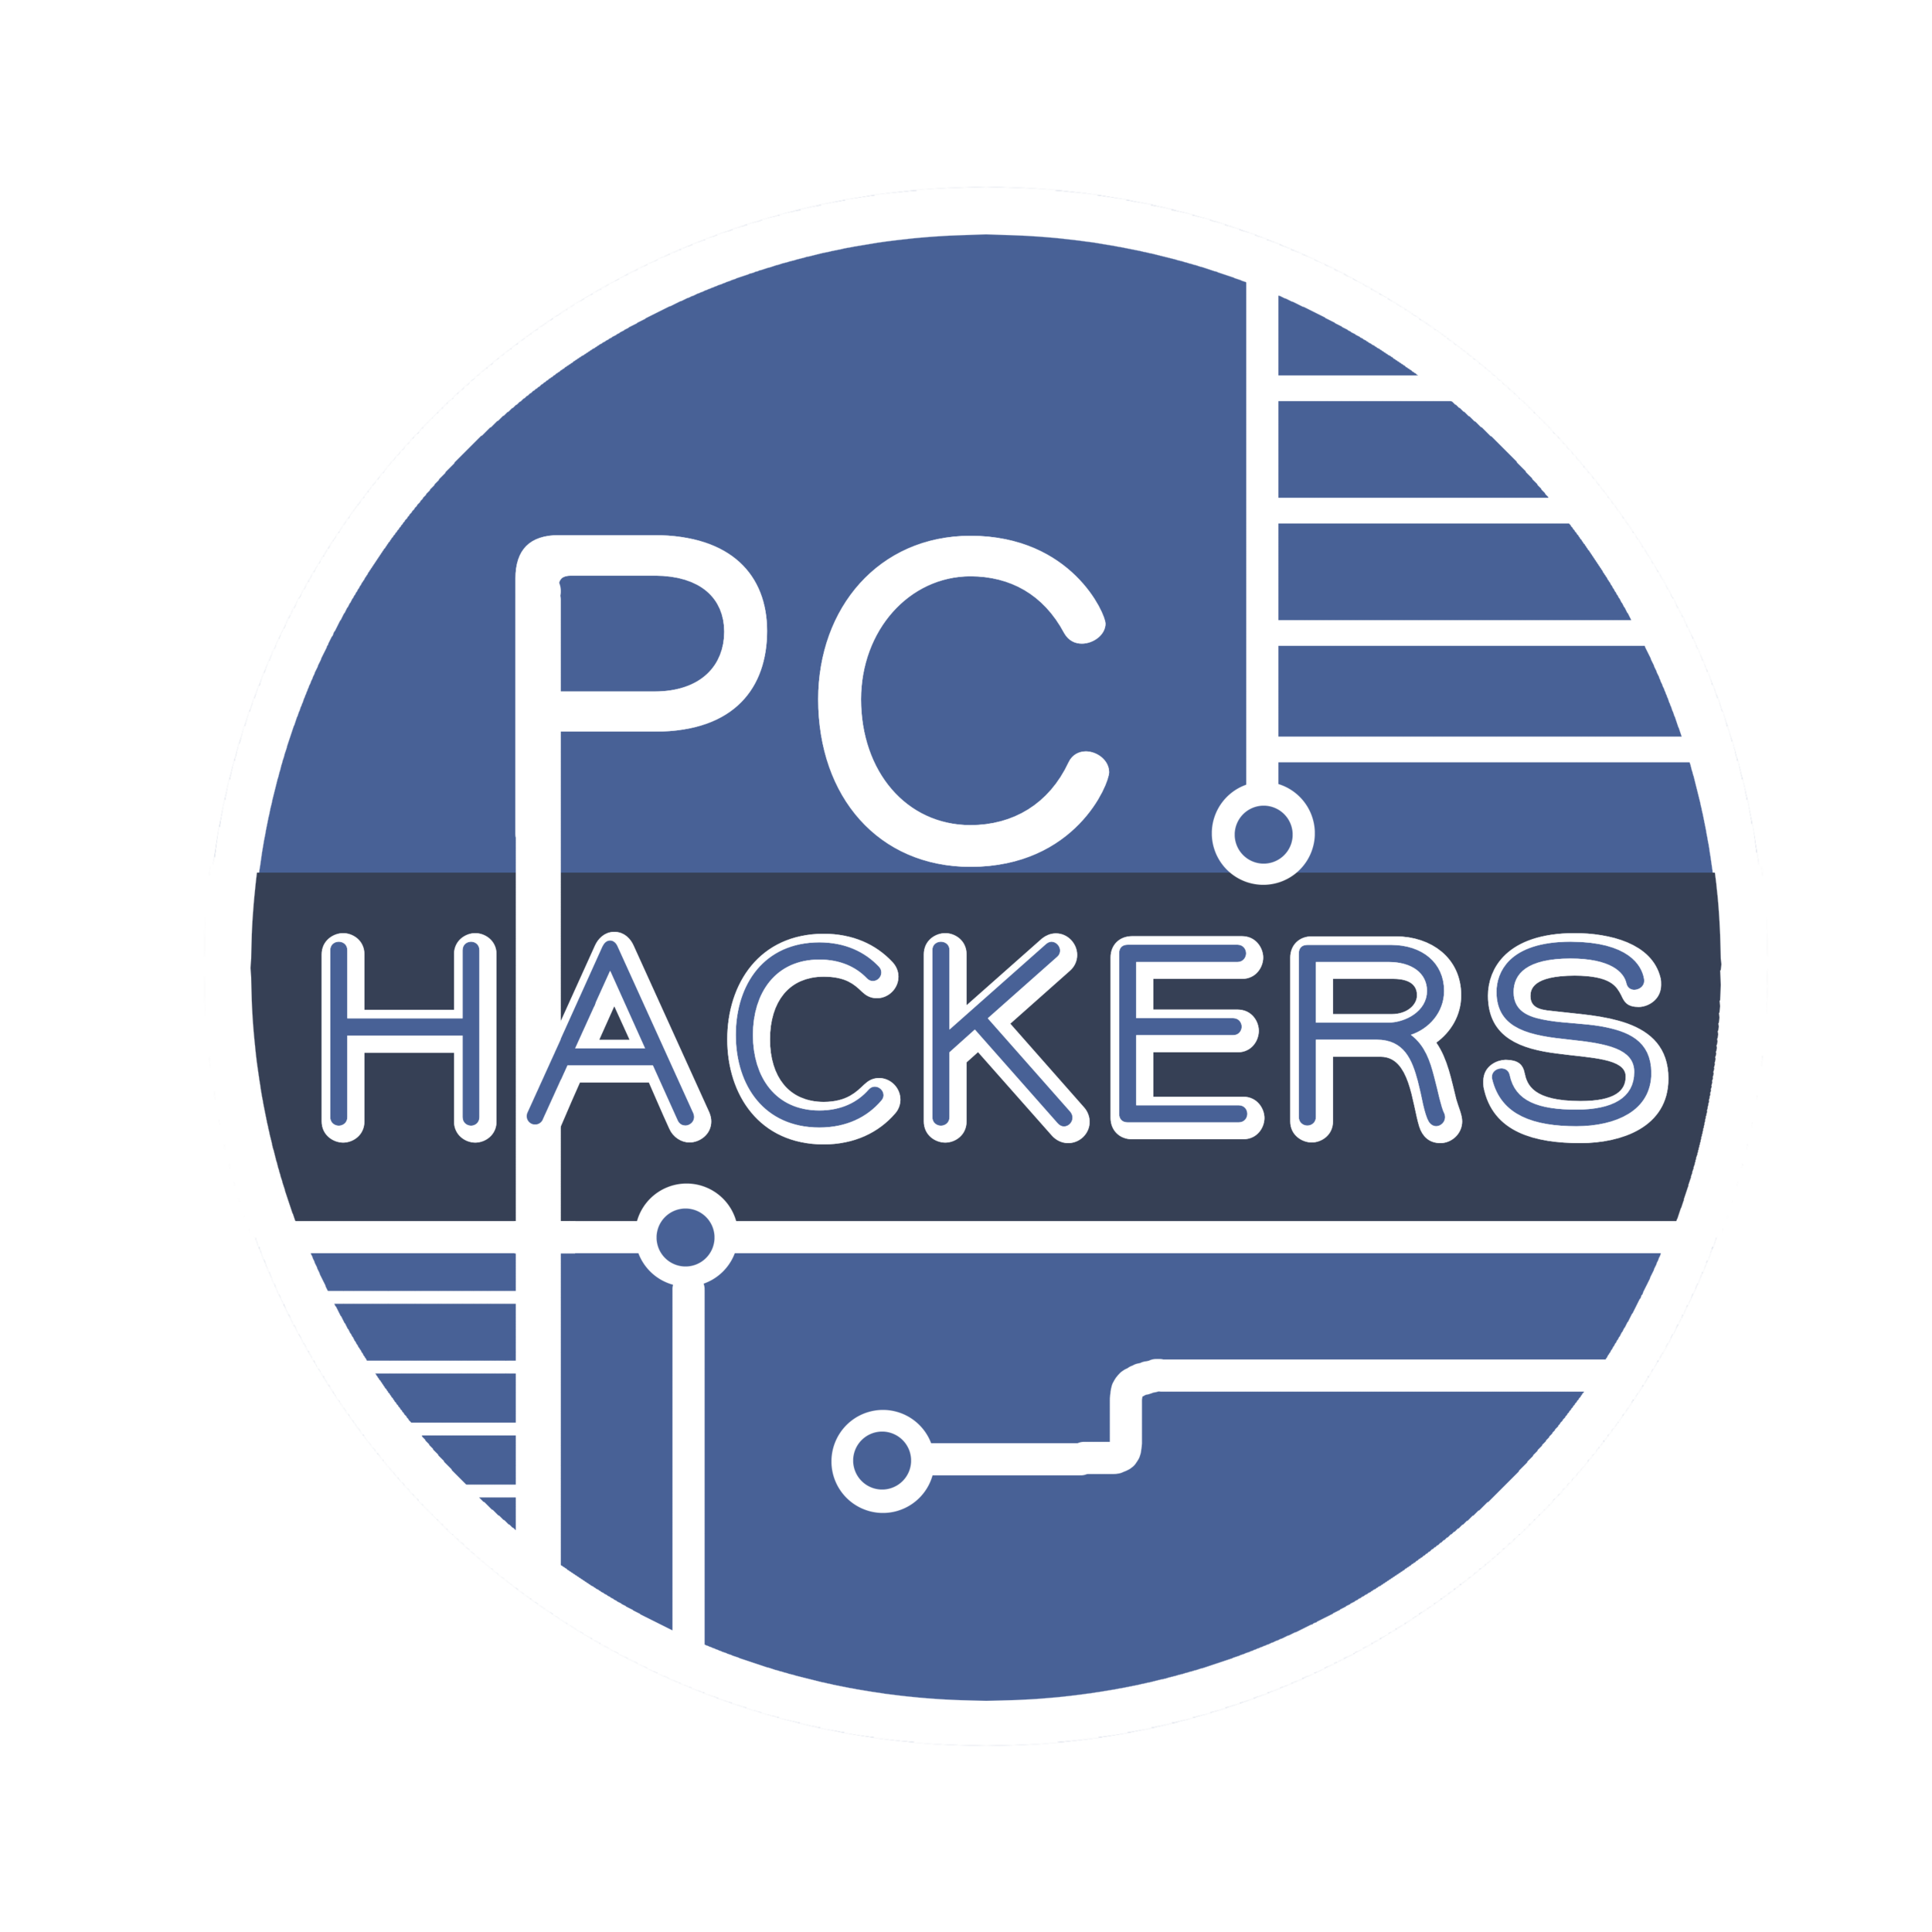 PCHACKERS LOGO1.png